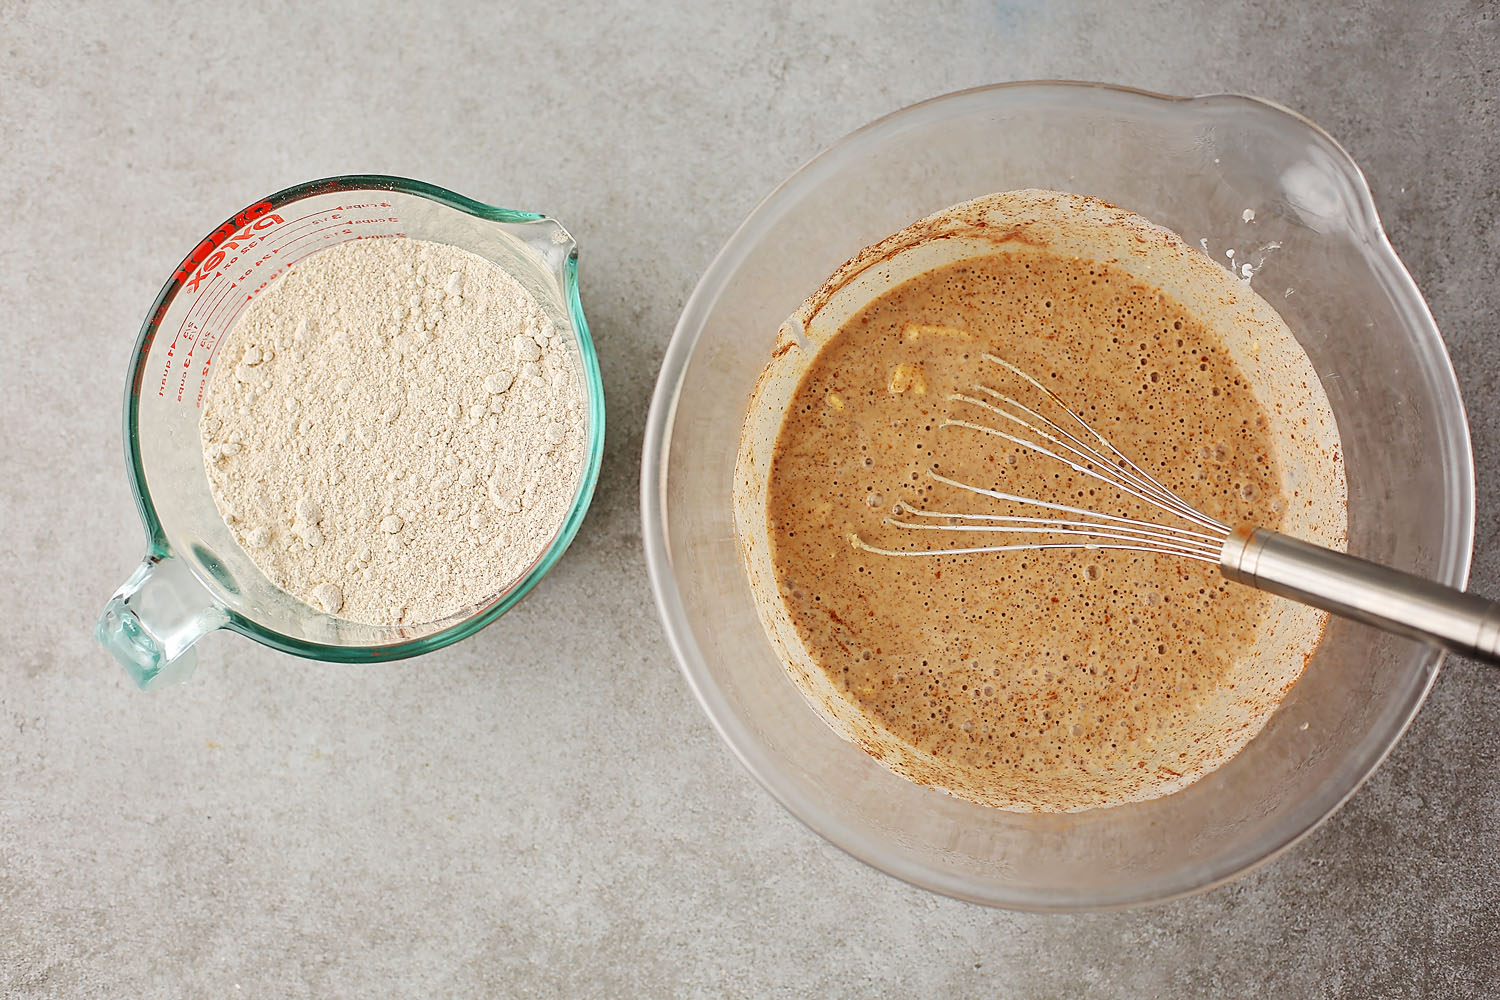 mixing bowl with egg, butter, cinnamon mixture and measuring cup with flour